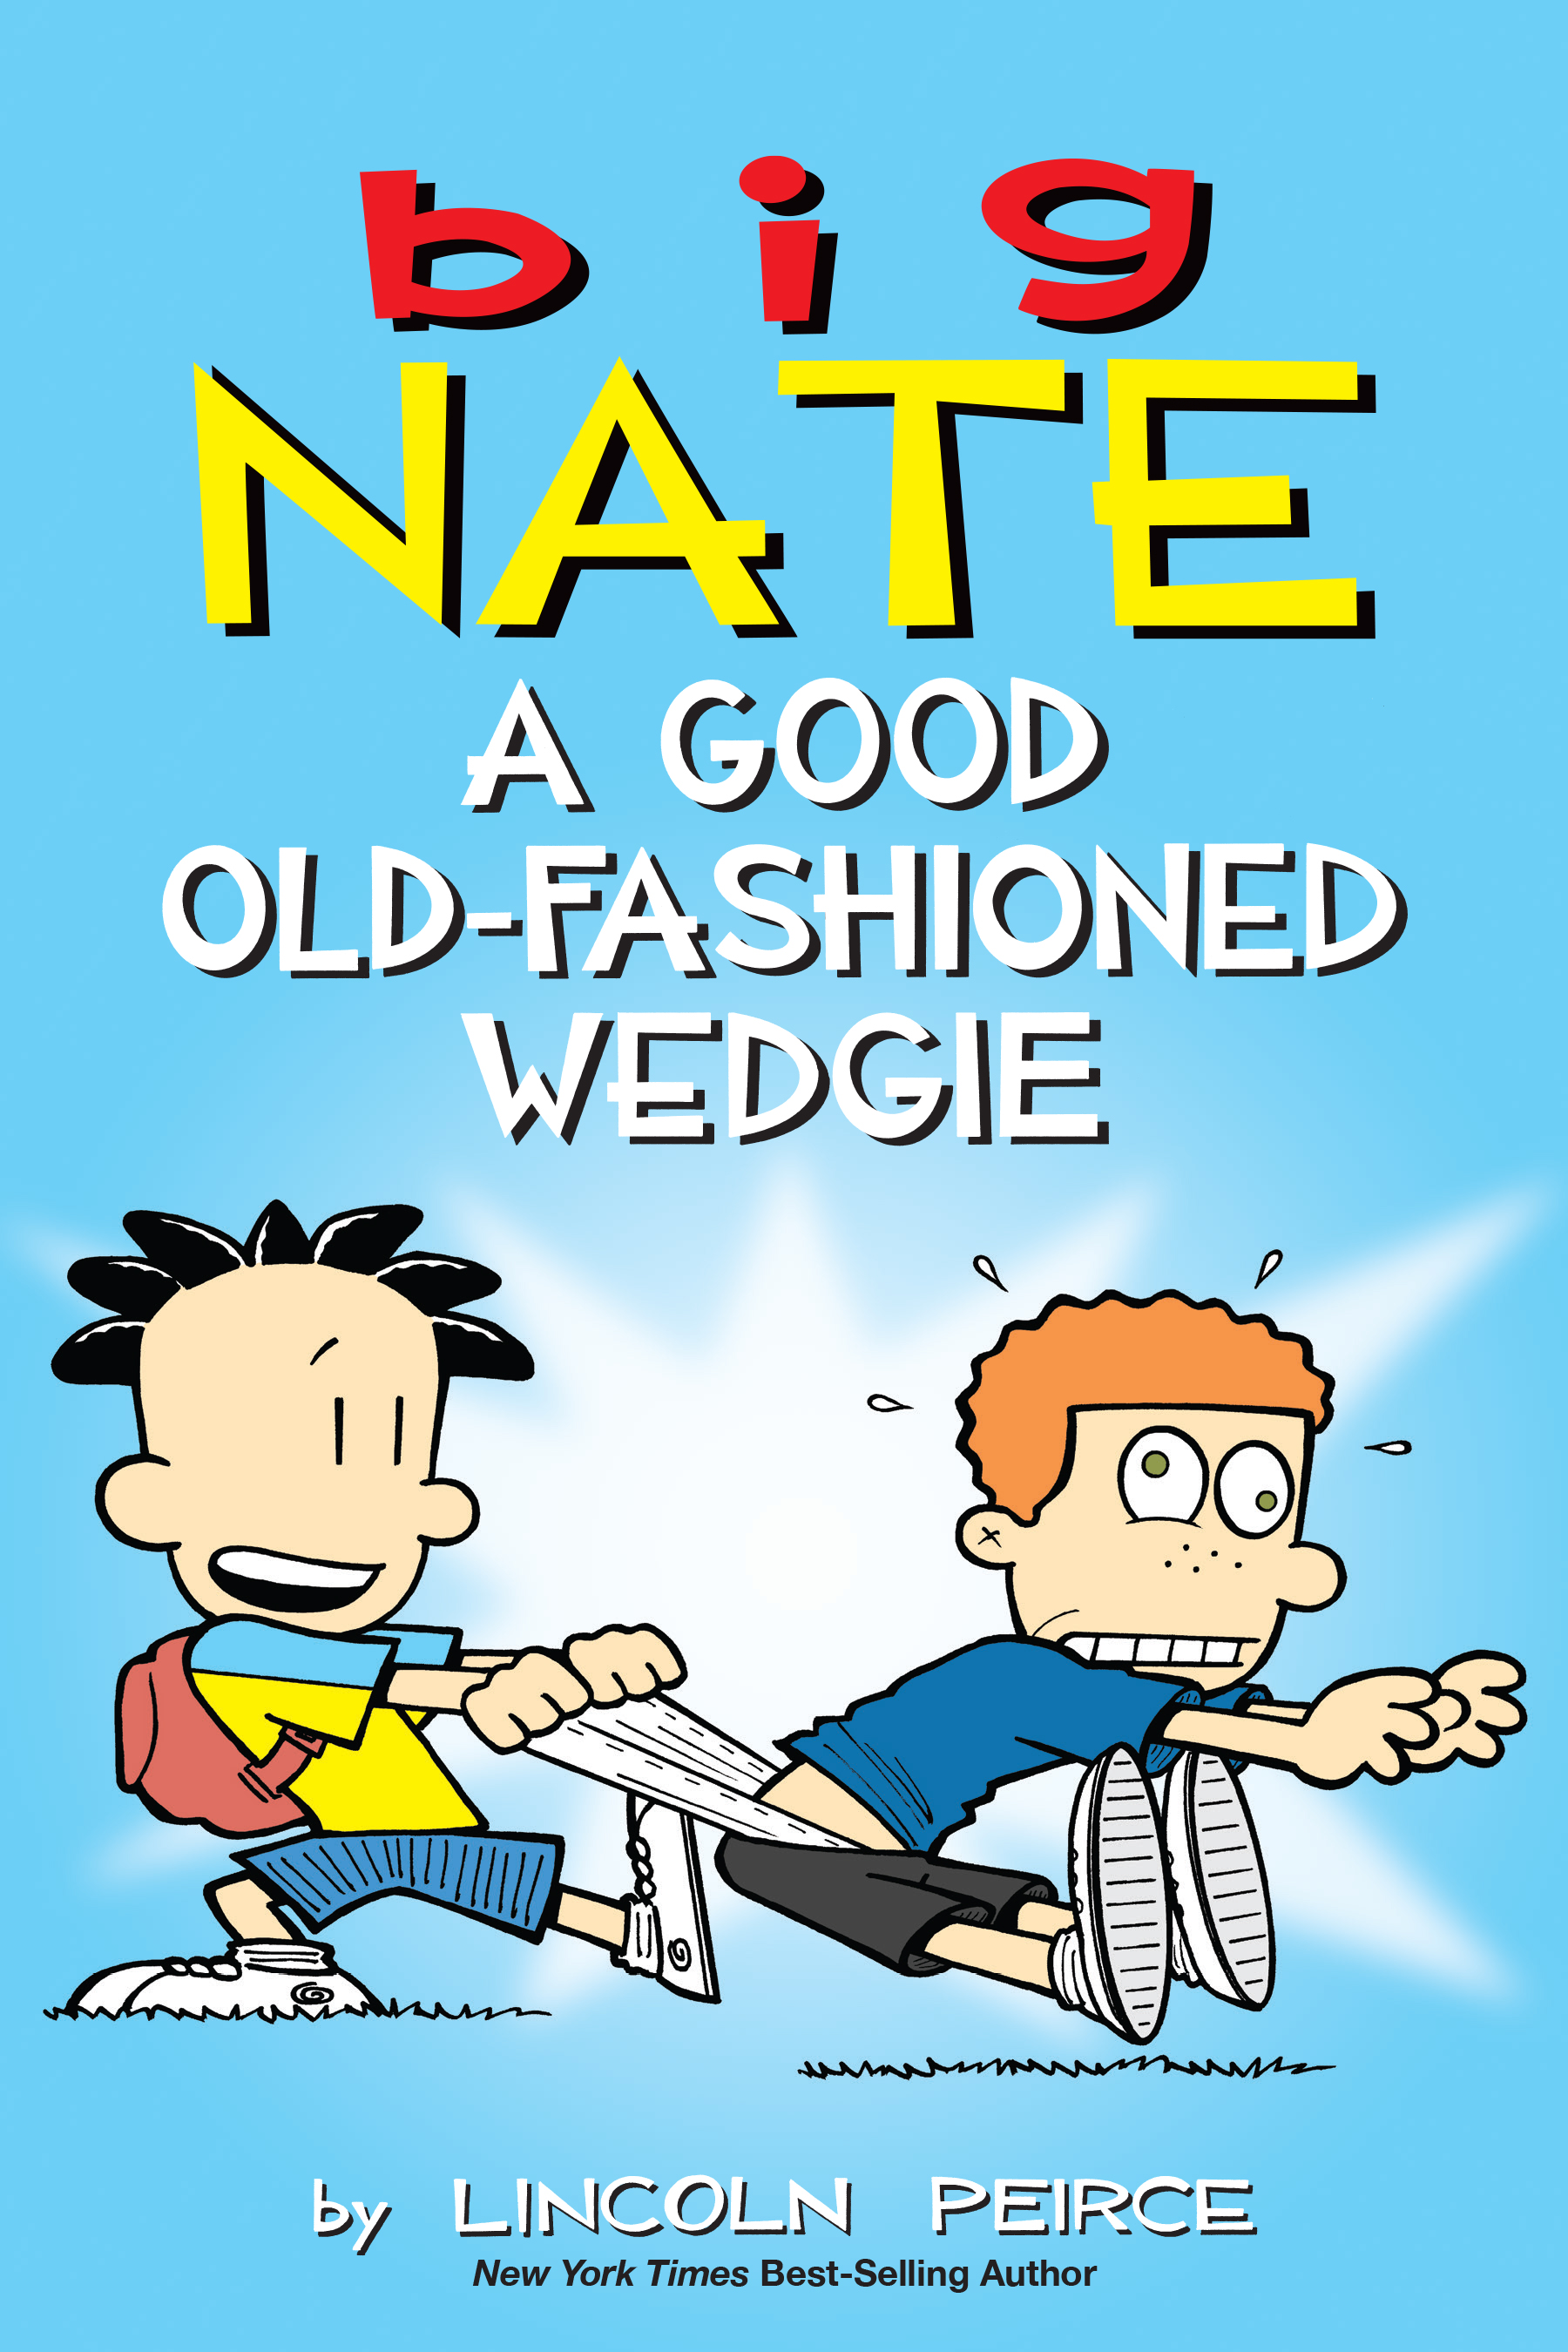 Big Nate. A Good Old-Fashioned Wedgie cover image